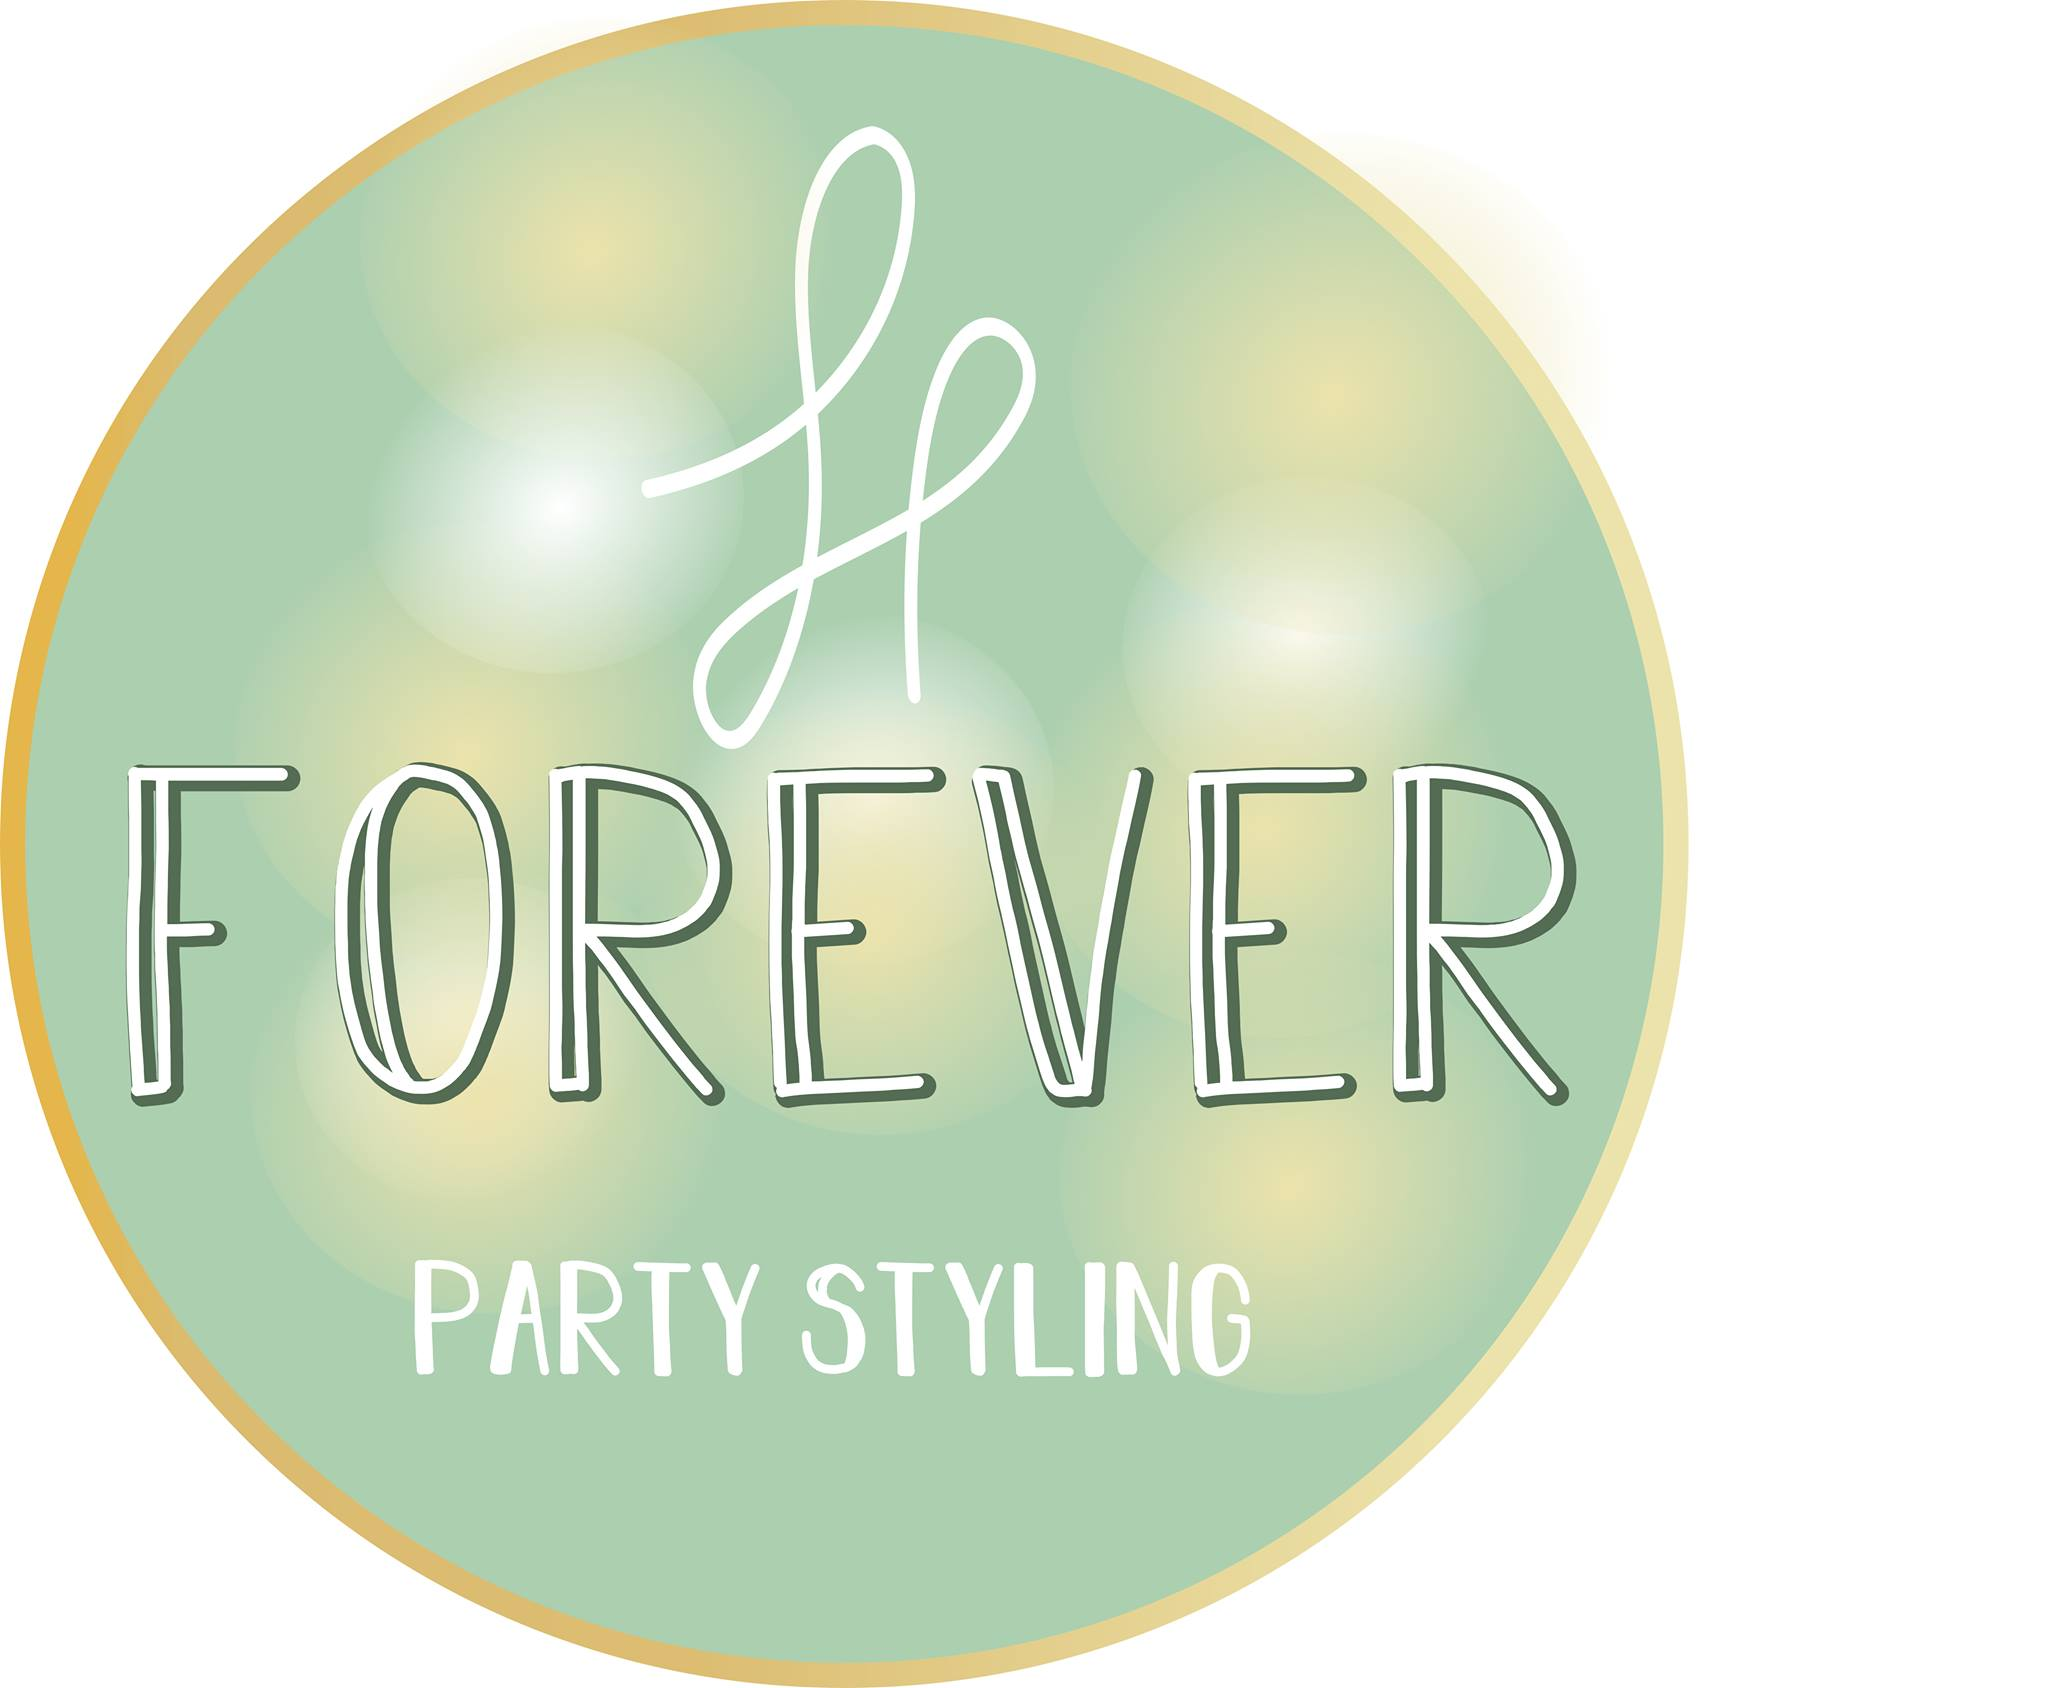 Forever Party Styling